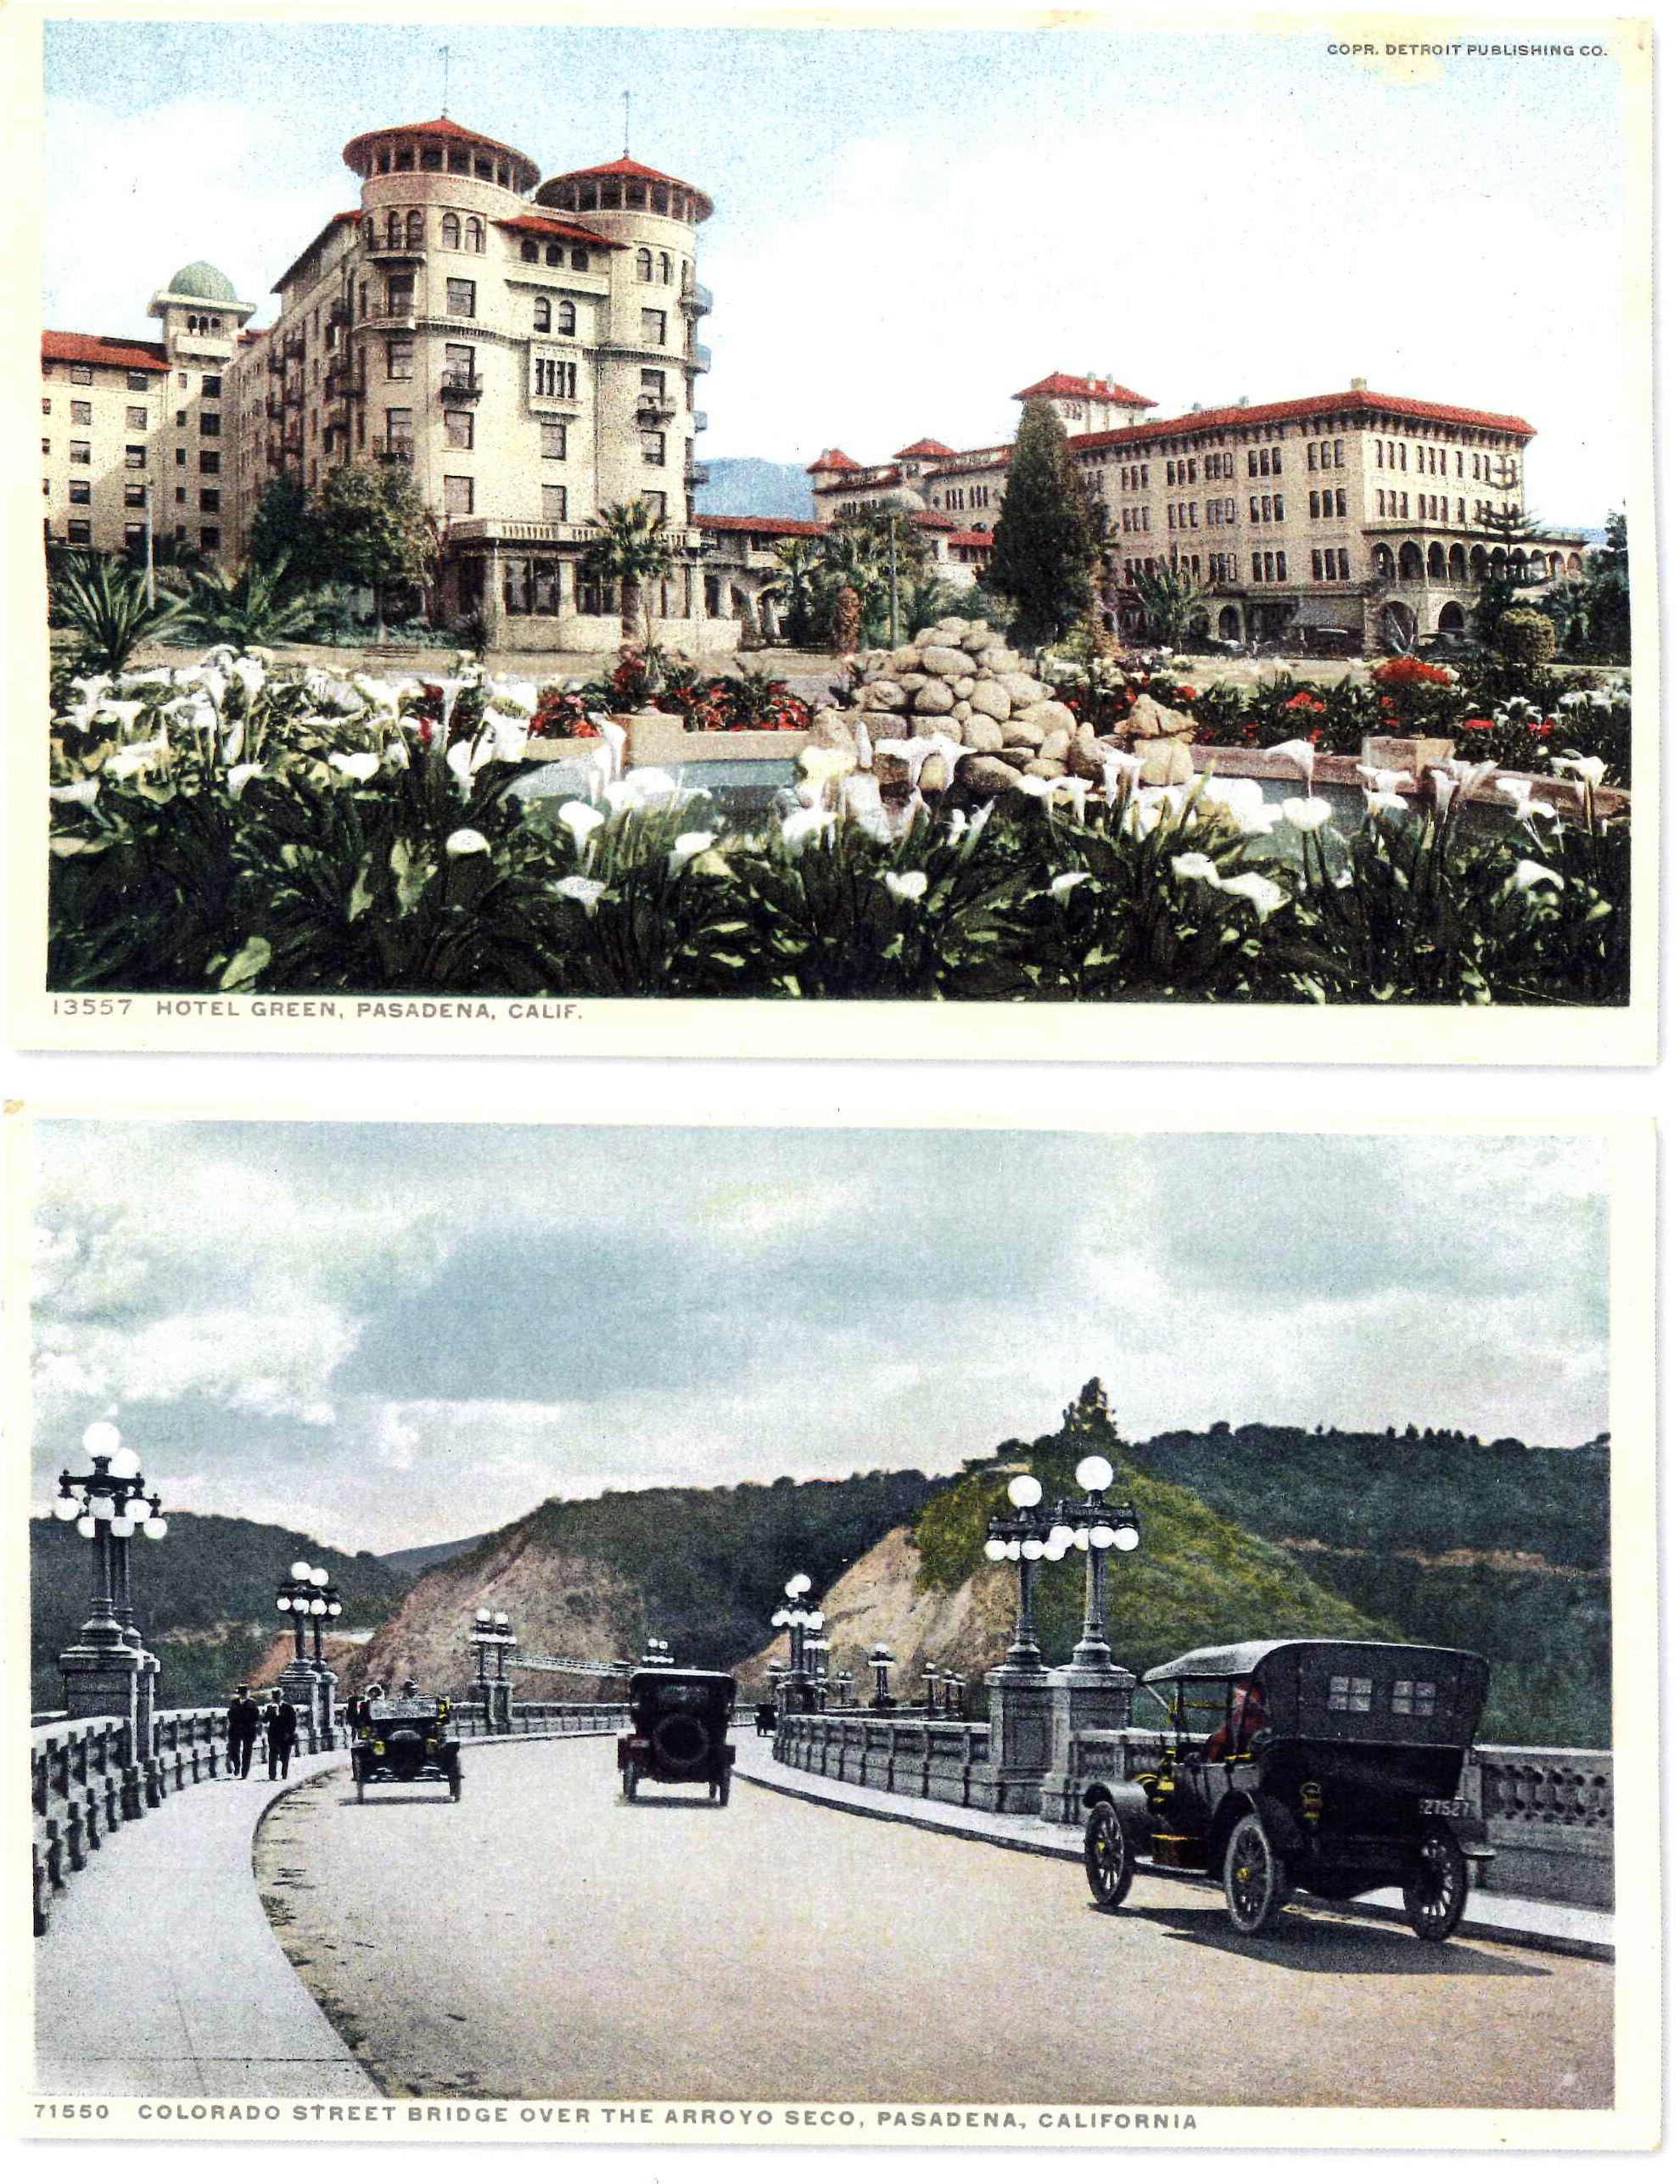 Hotel Green (top) and the Colorado Street Bridge over Arroyo Seco in Pasadena, California